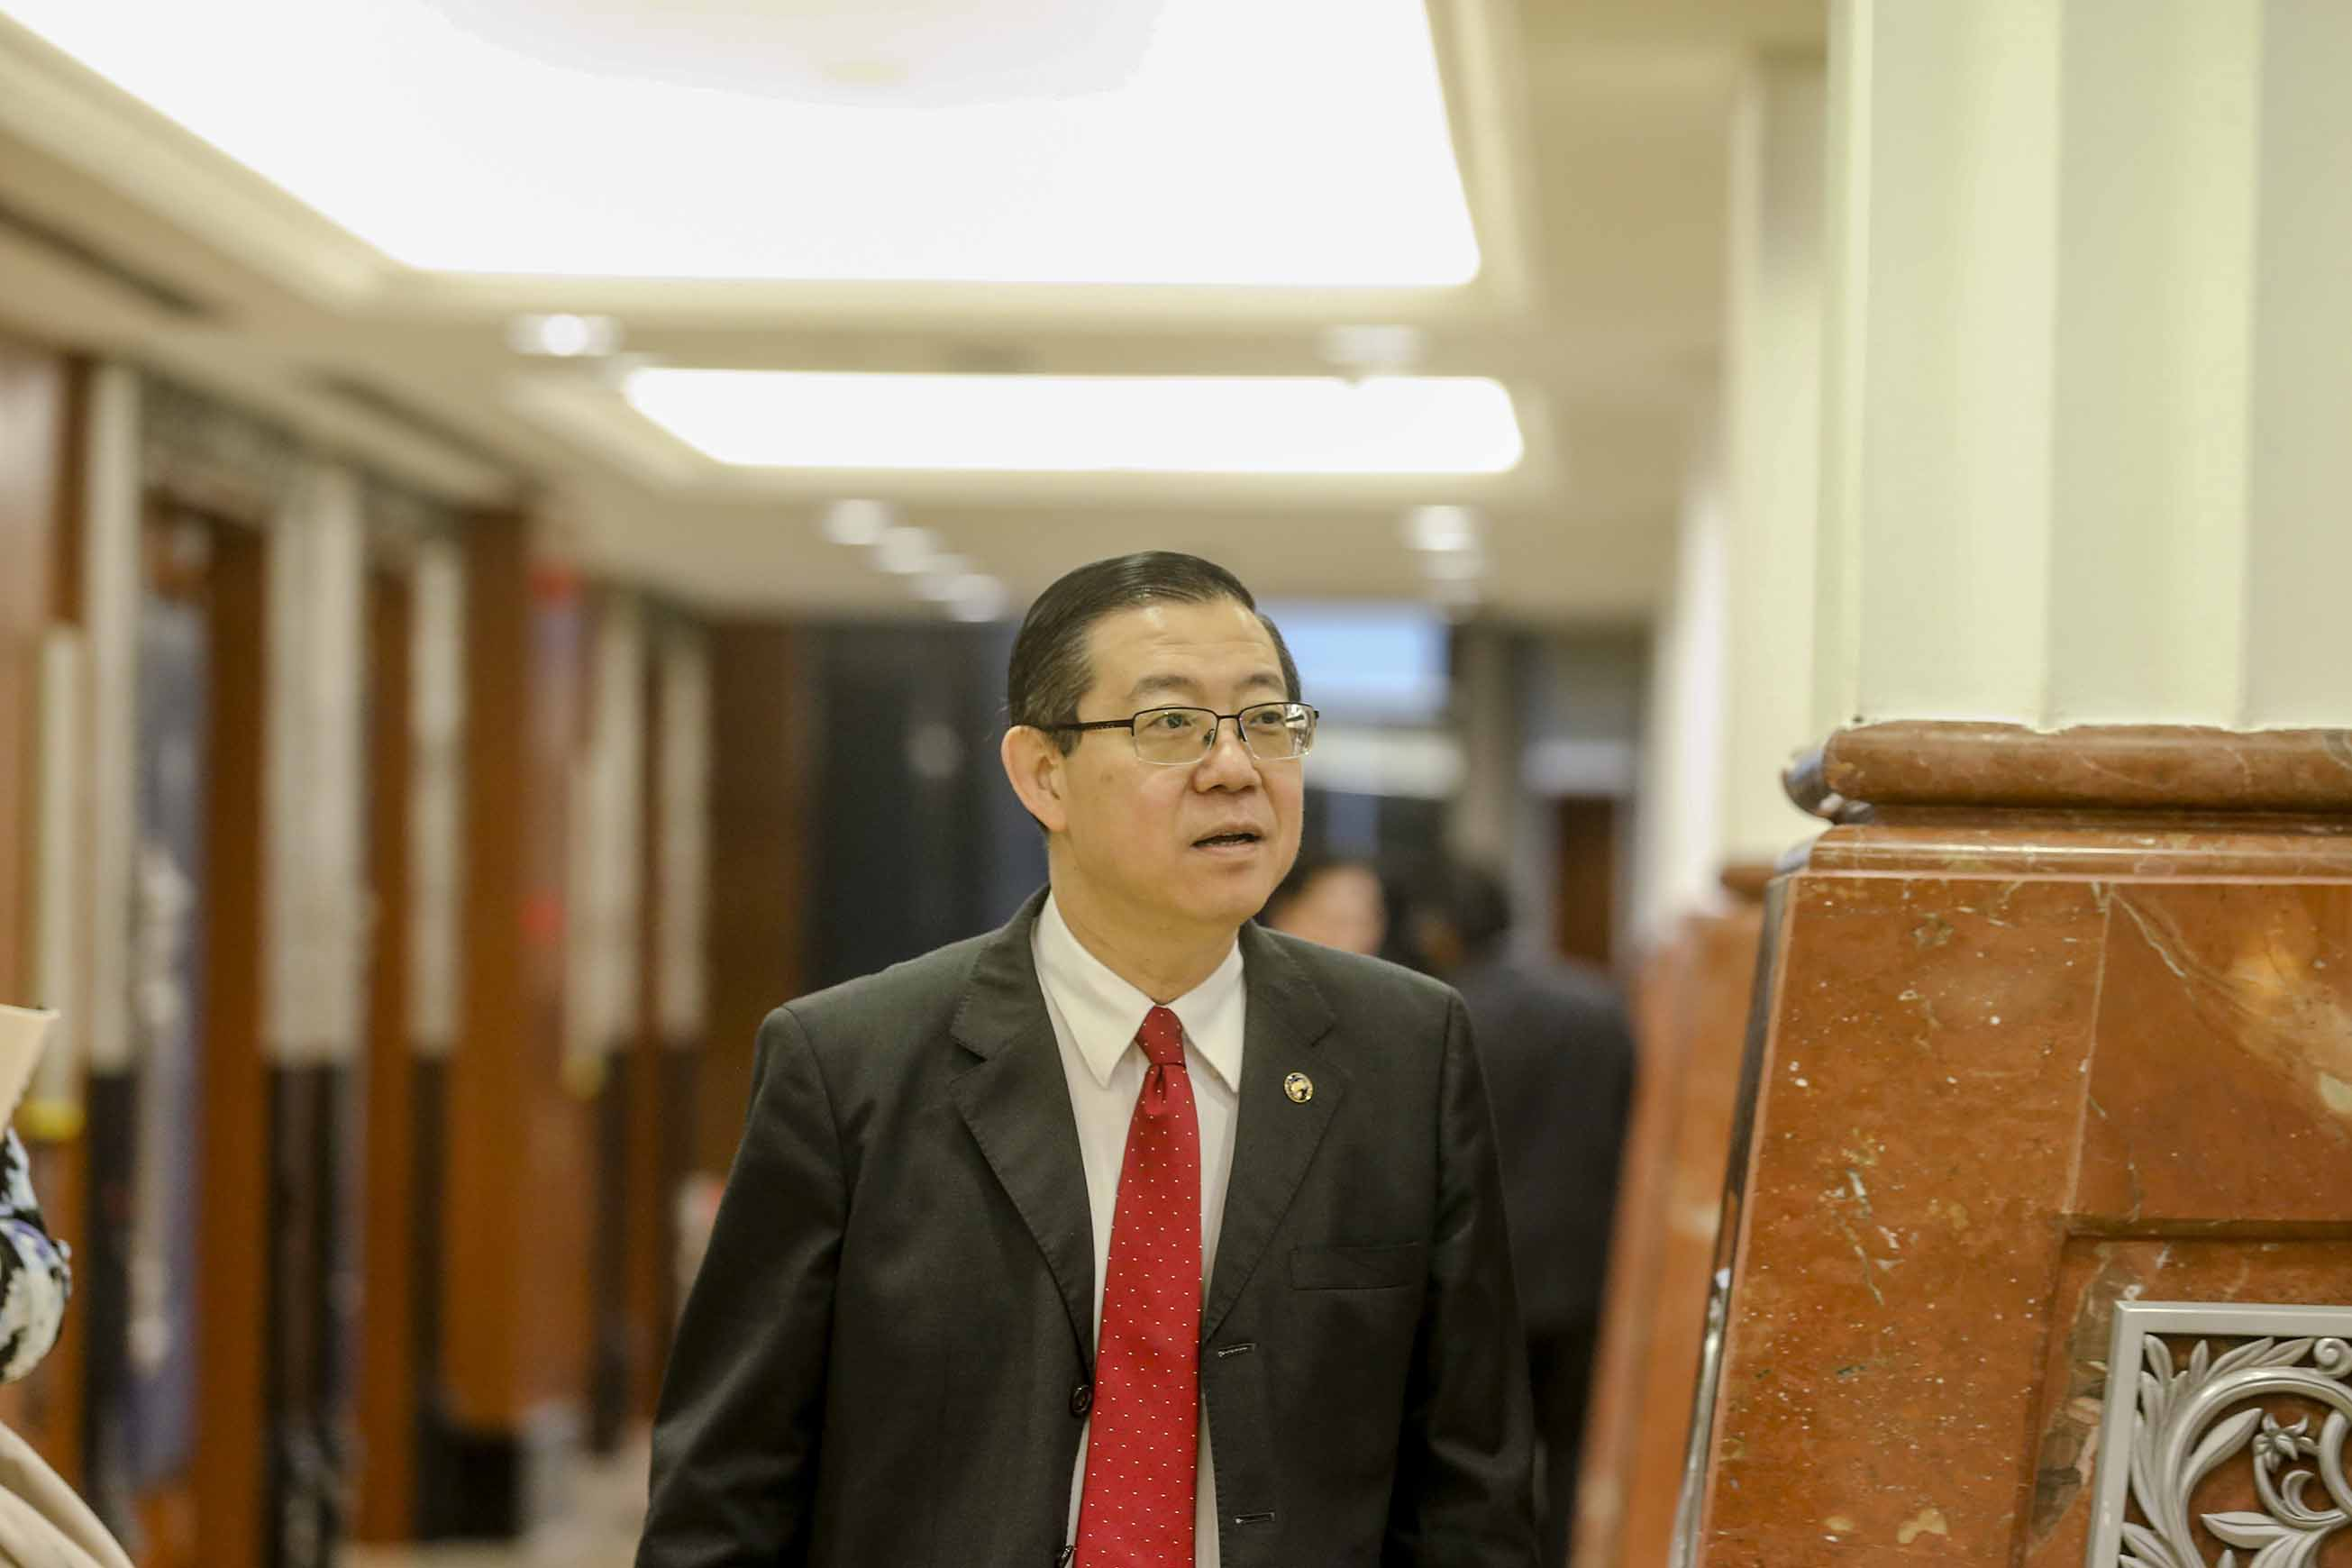 Lim Guan Eng speaks to reporters in Parliament December 10, 2018. — Picture by Firdaus Latif